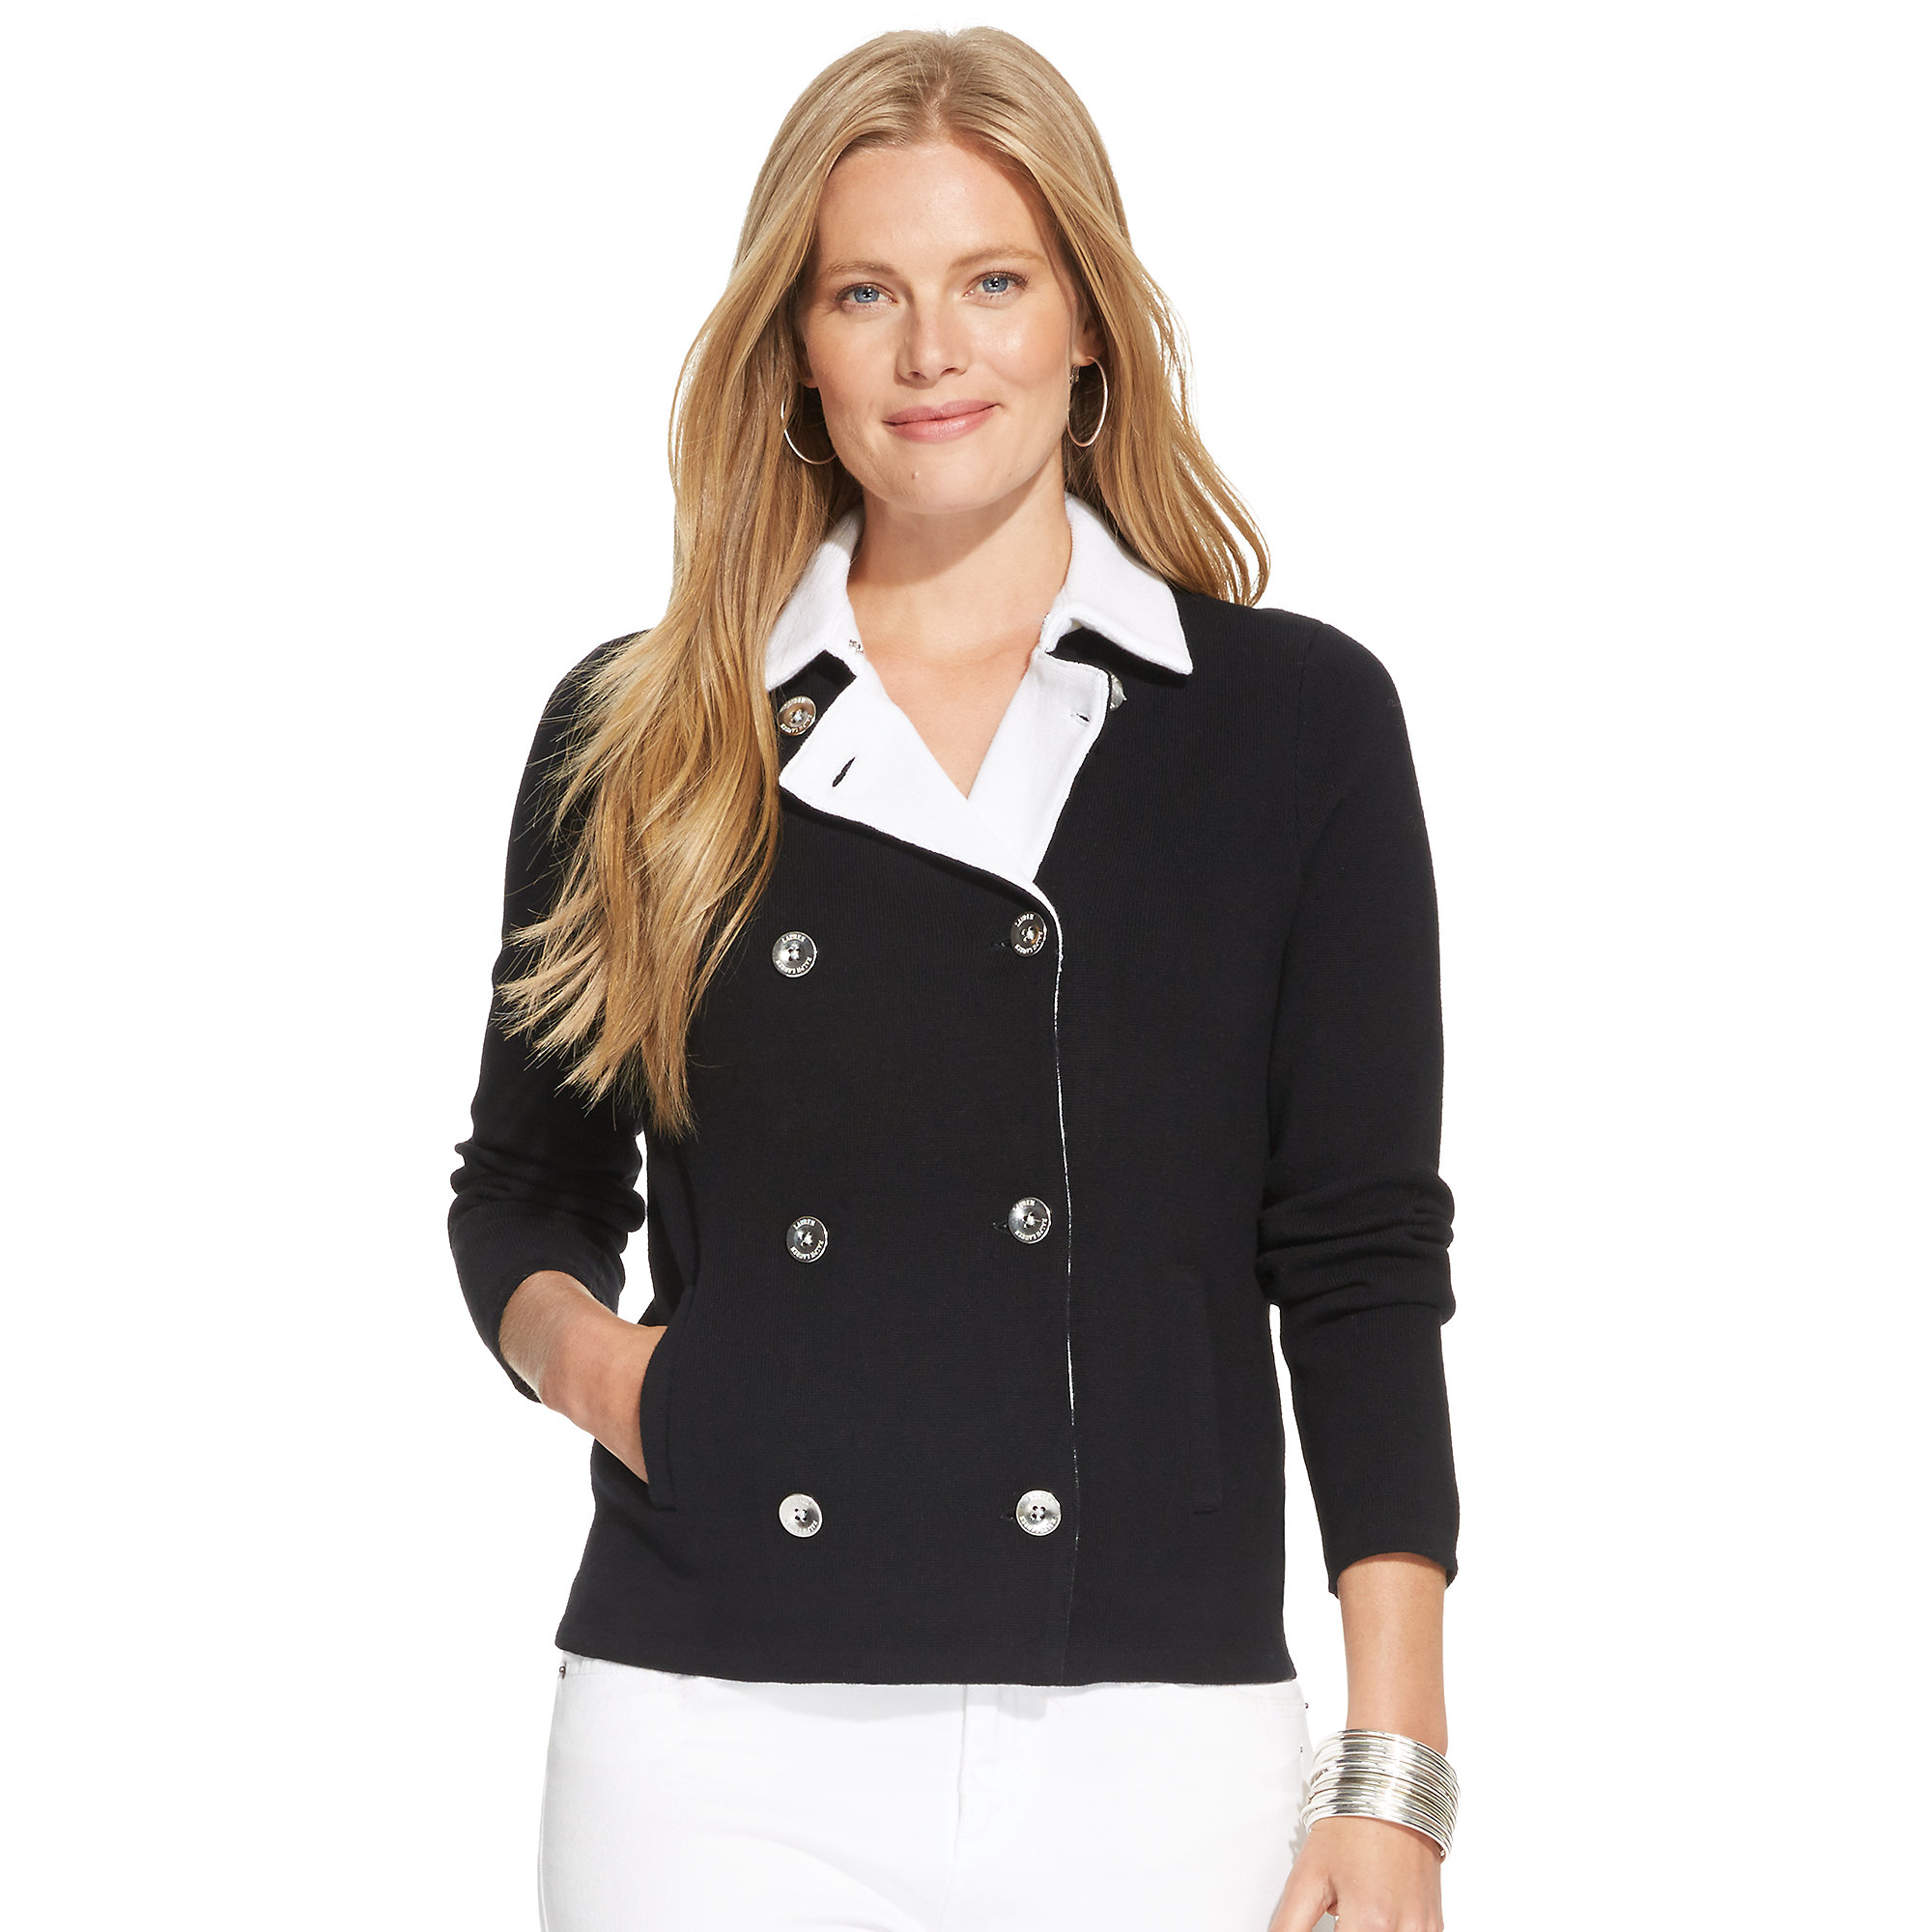 Ralph lauren double breasted sweater jacket sweater for Banded bottom shirts canada